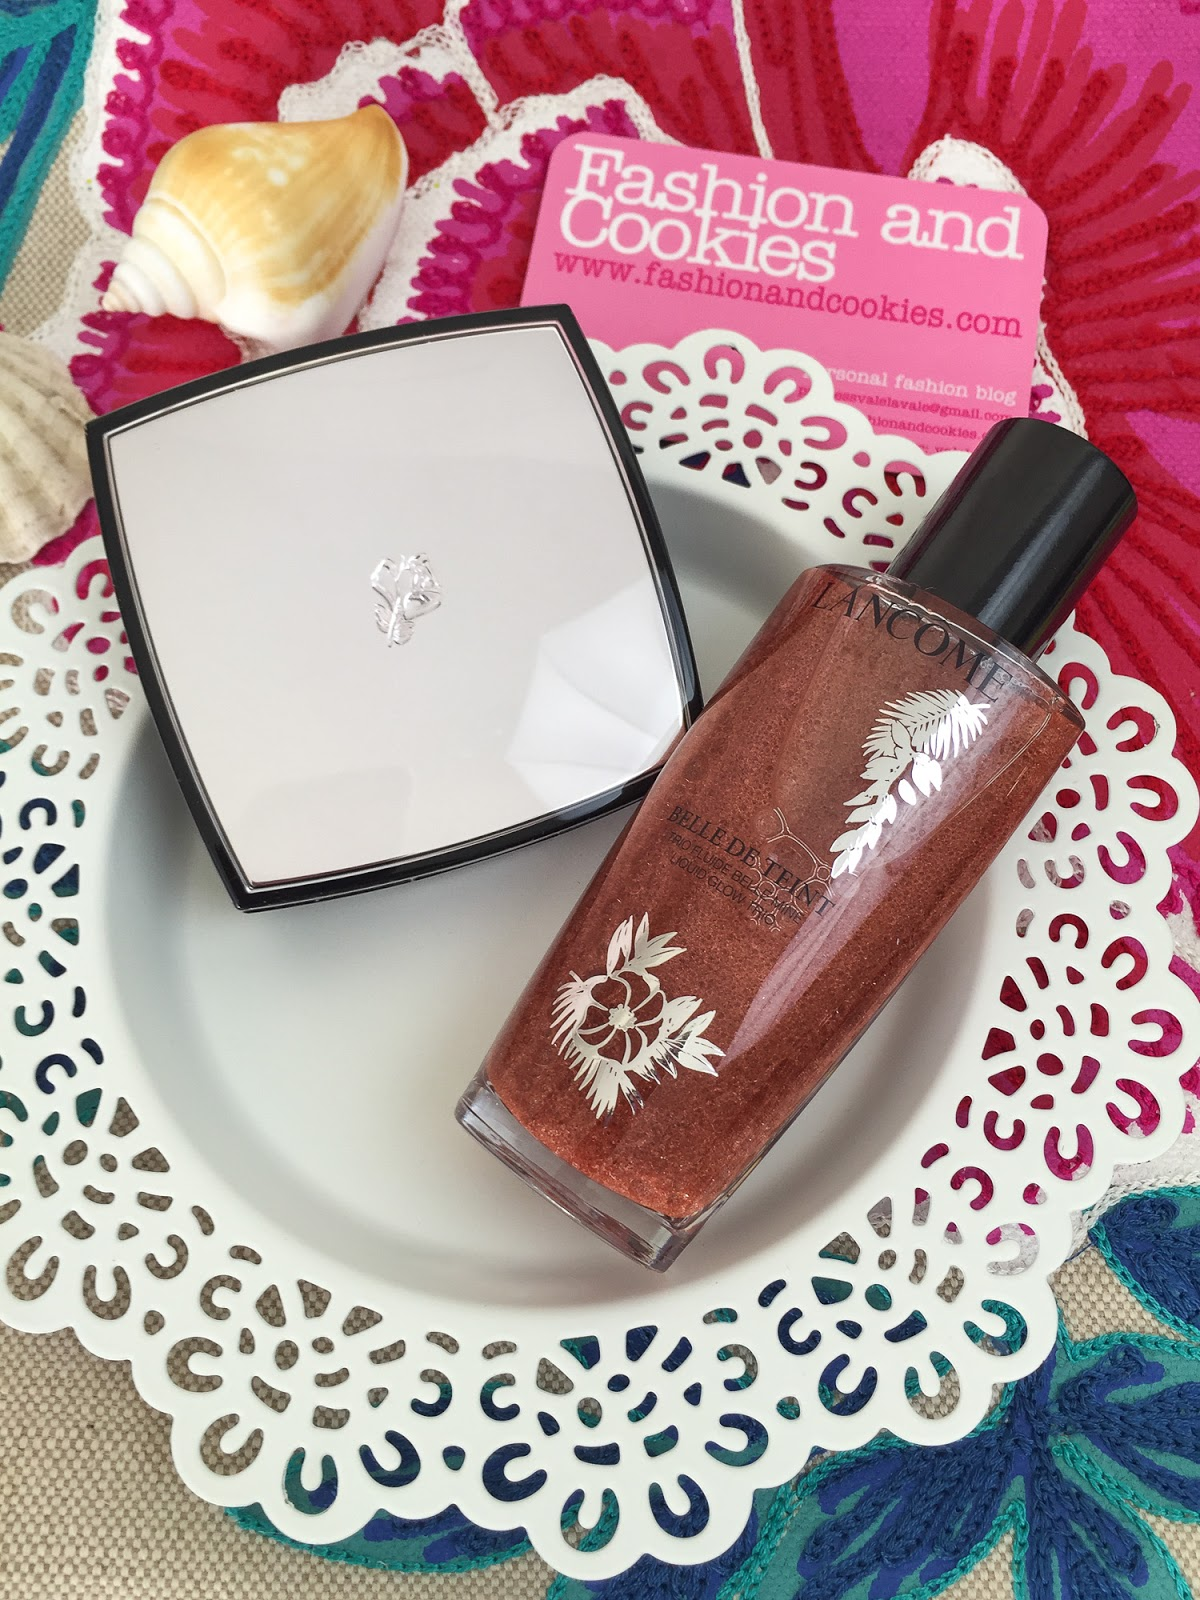 Lancôme makeup collection 2016: Summer bliss, Belle de Teint Liquid glow trio review on Fashion and Cookies fashion blog, fashion blogger